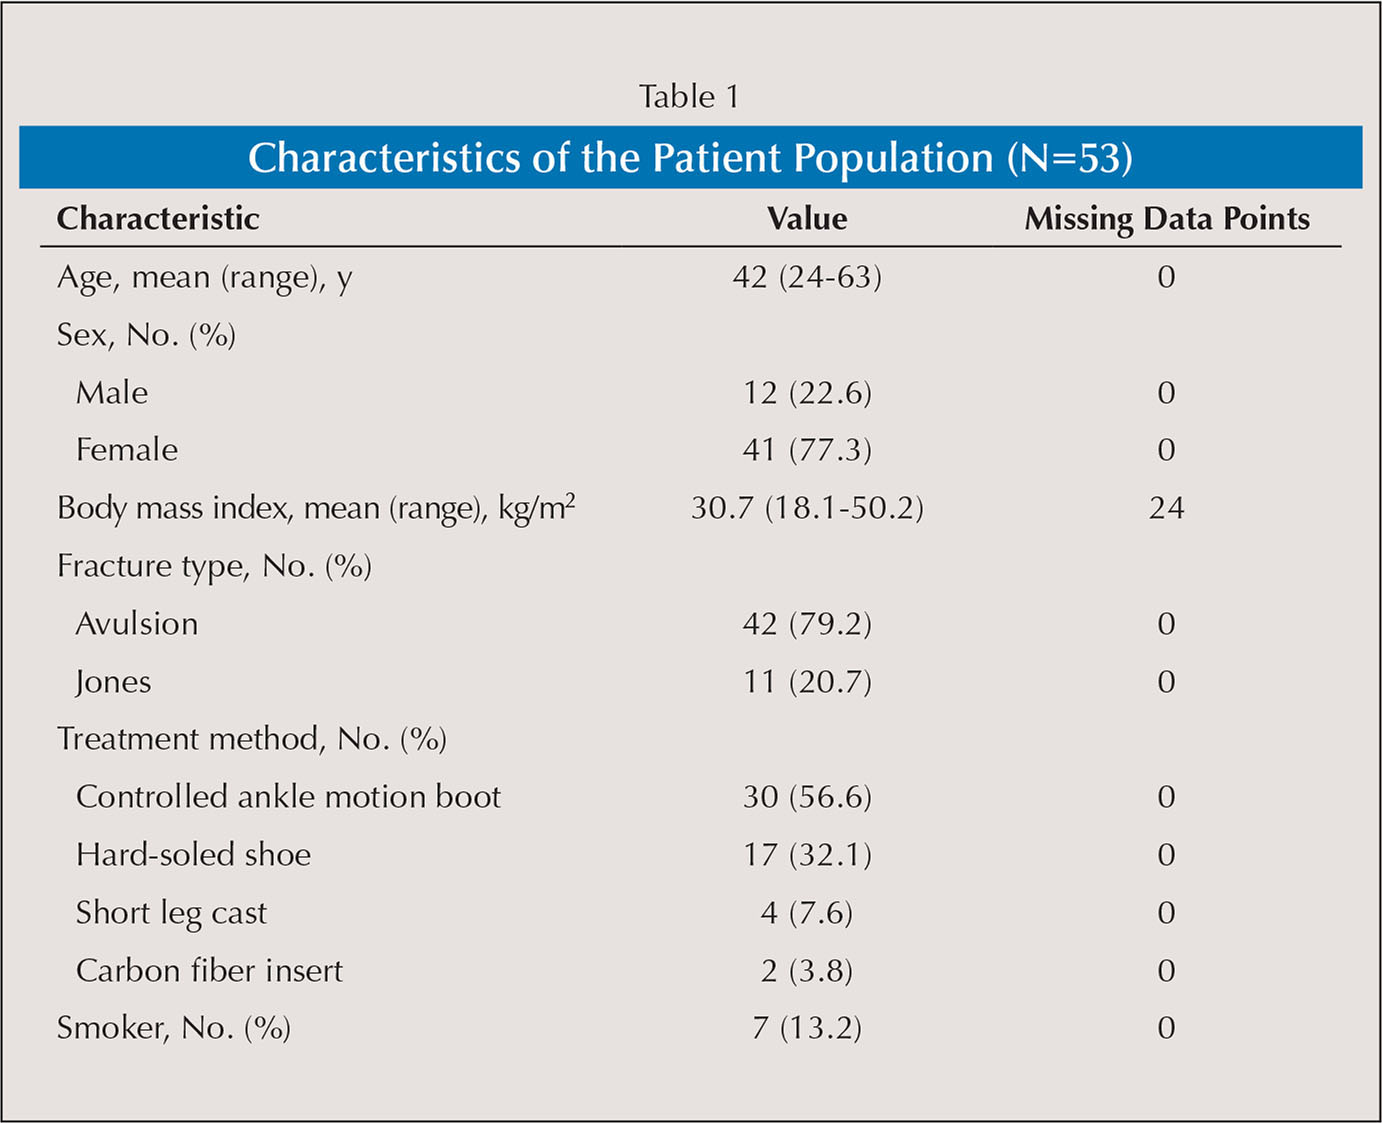 Characteristics of the Patient Population (N=53)